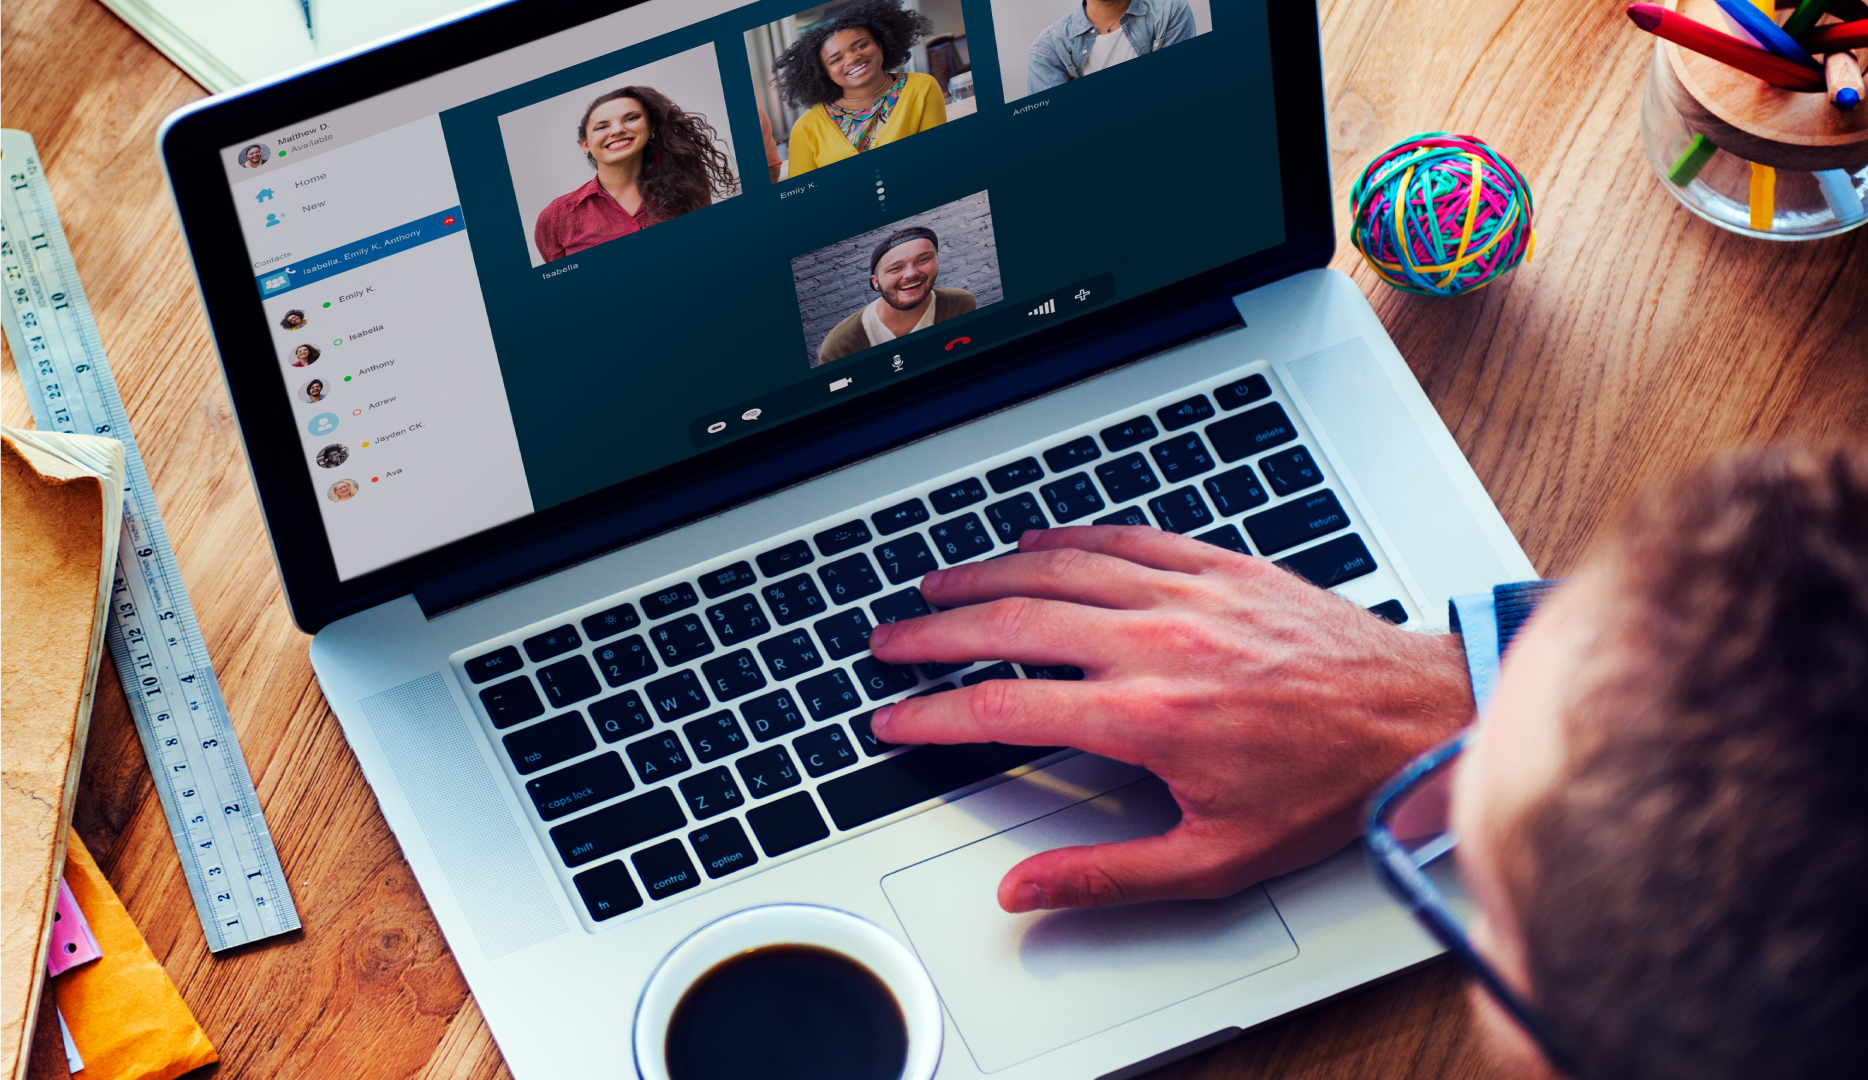 More tips for enhancing remote team collaborations